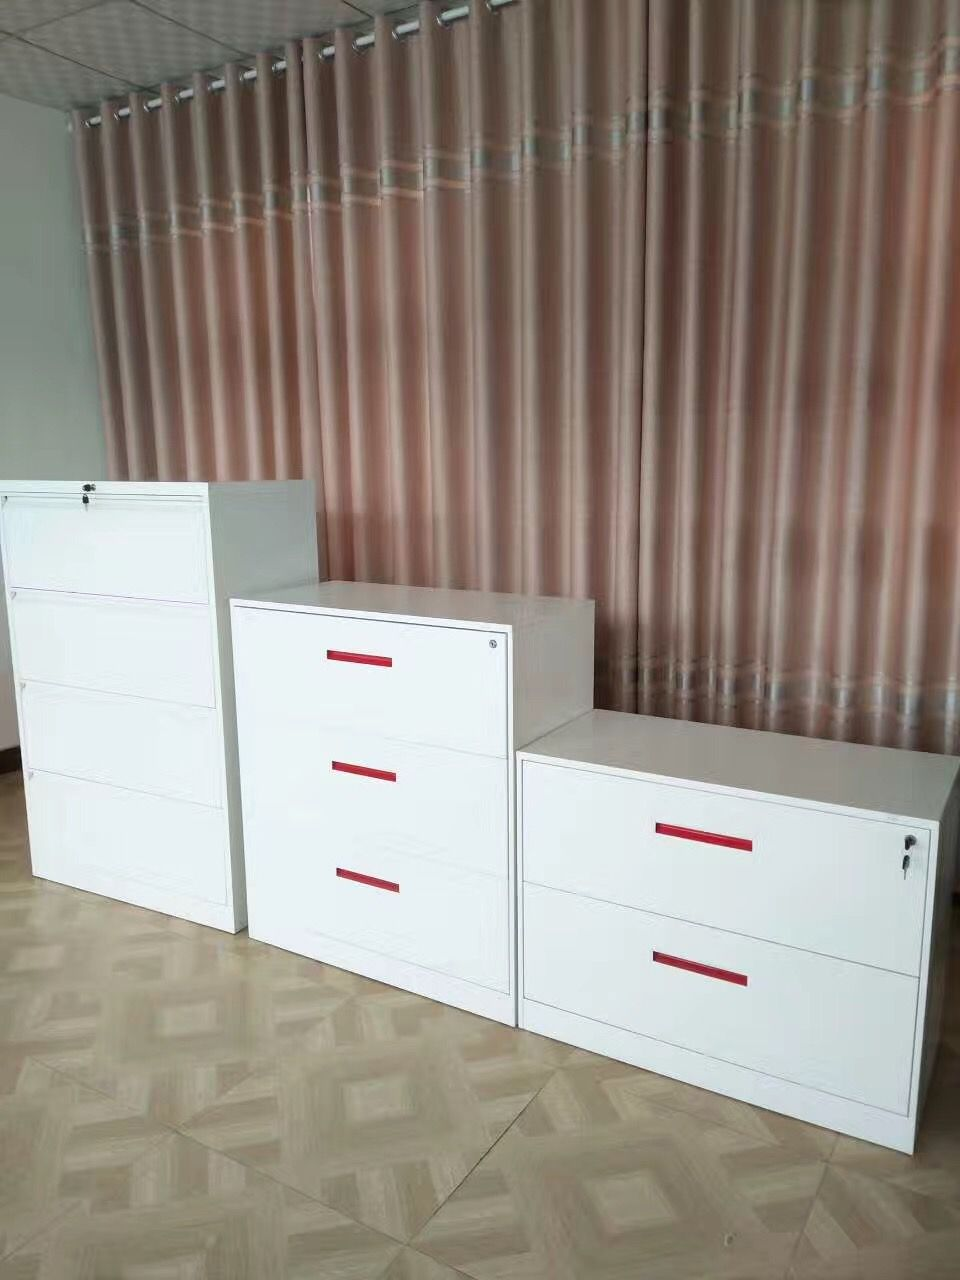 China Standard Dimensions Hoizontal Lateral Metal File Storage Cabinet Office